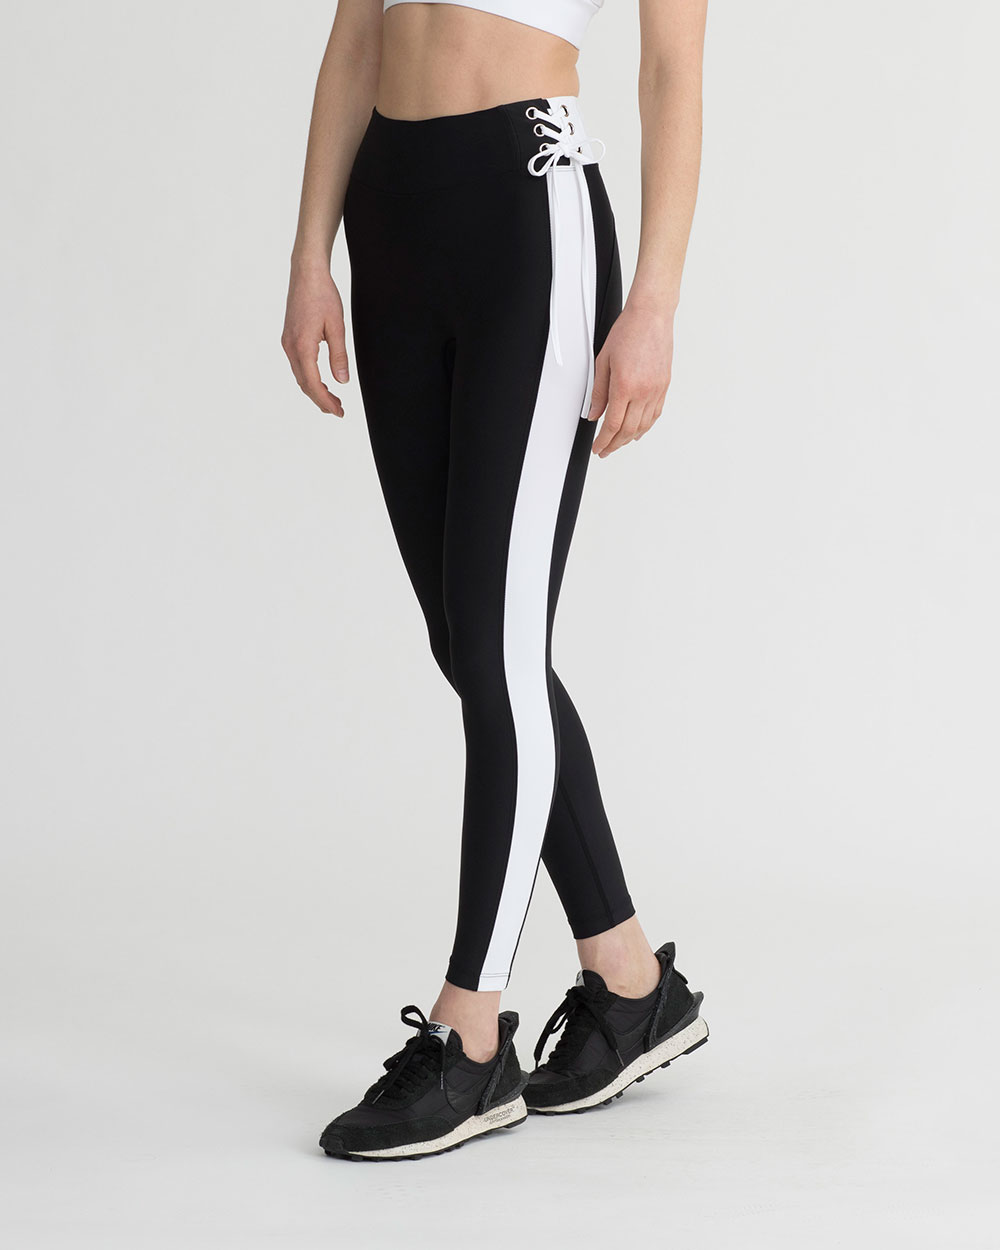 ELIA LEGGINGS BLACK & WHITE COMBO